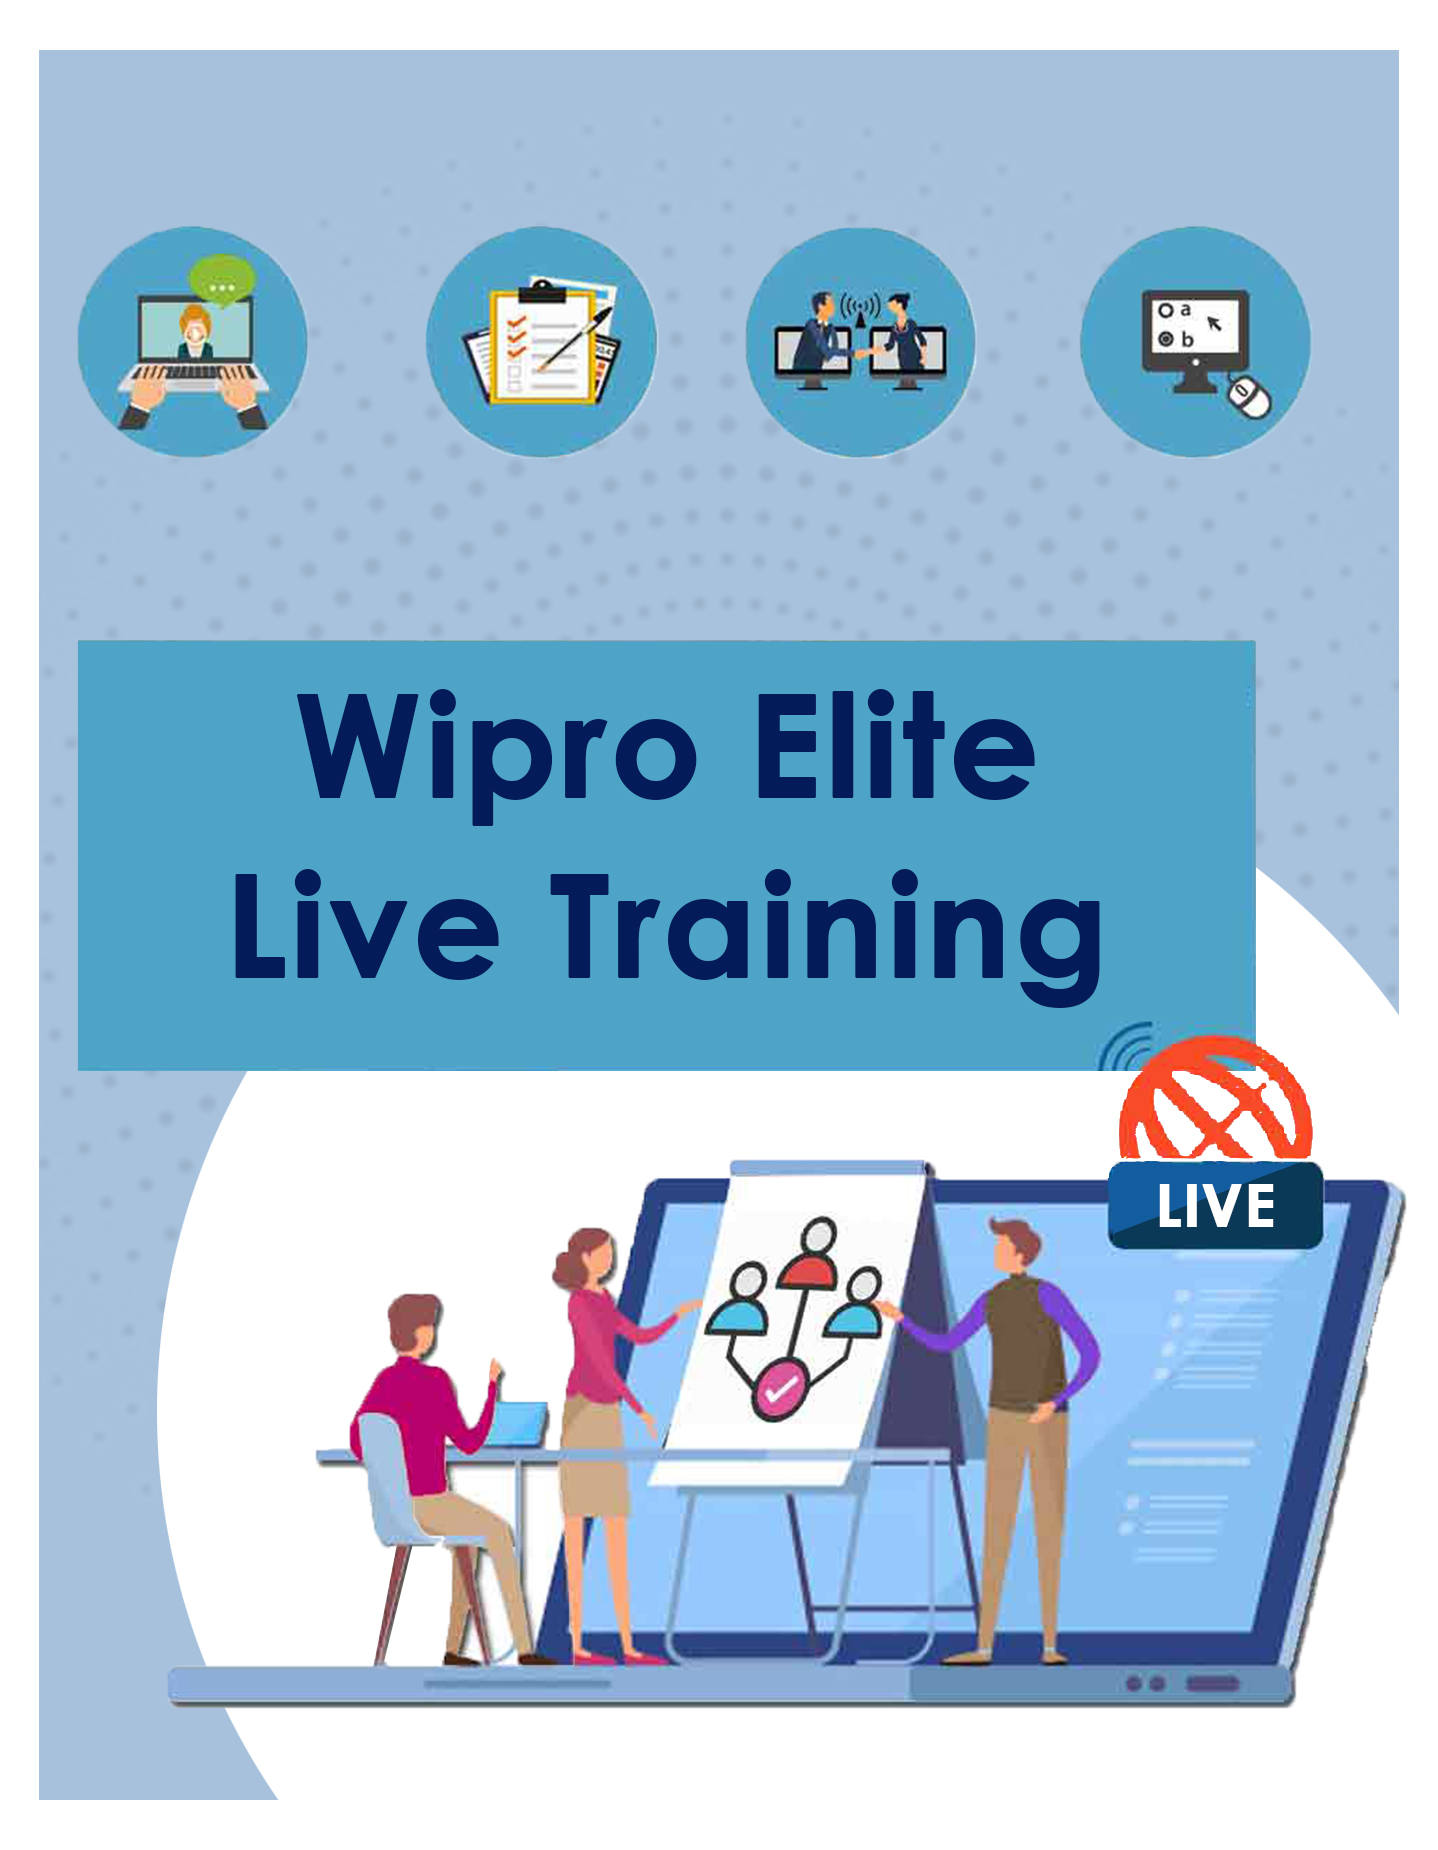 Wipro Elite 2020 Live Training